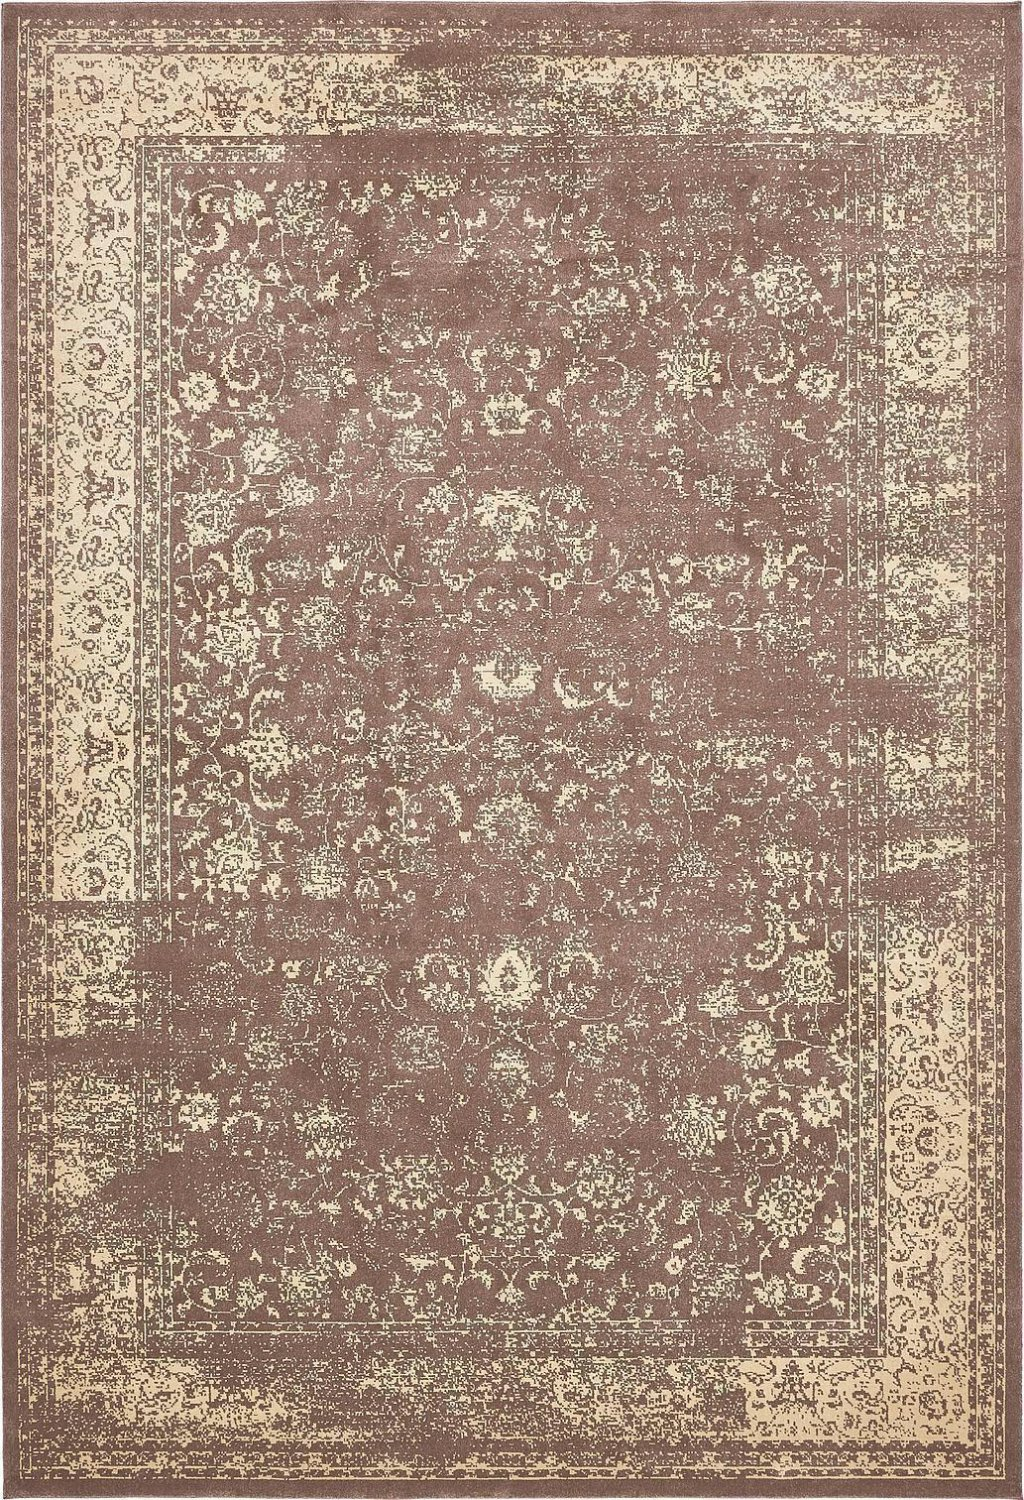 10x14  area rug carpet deal sale clearance barter home decor interior design